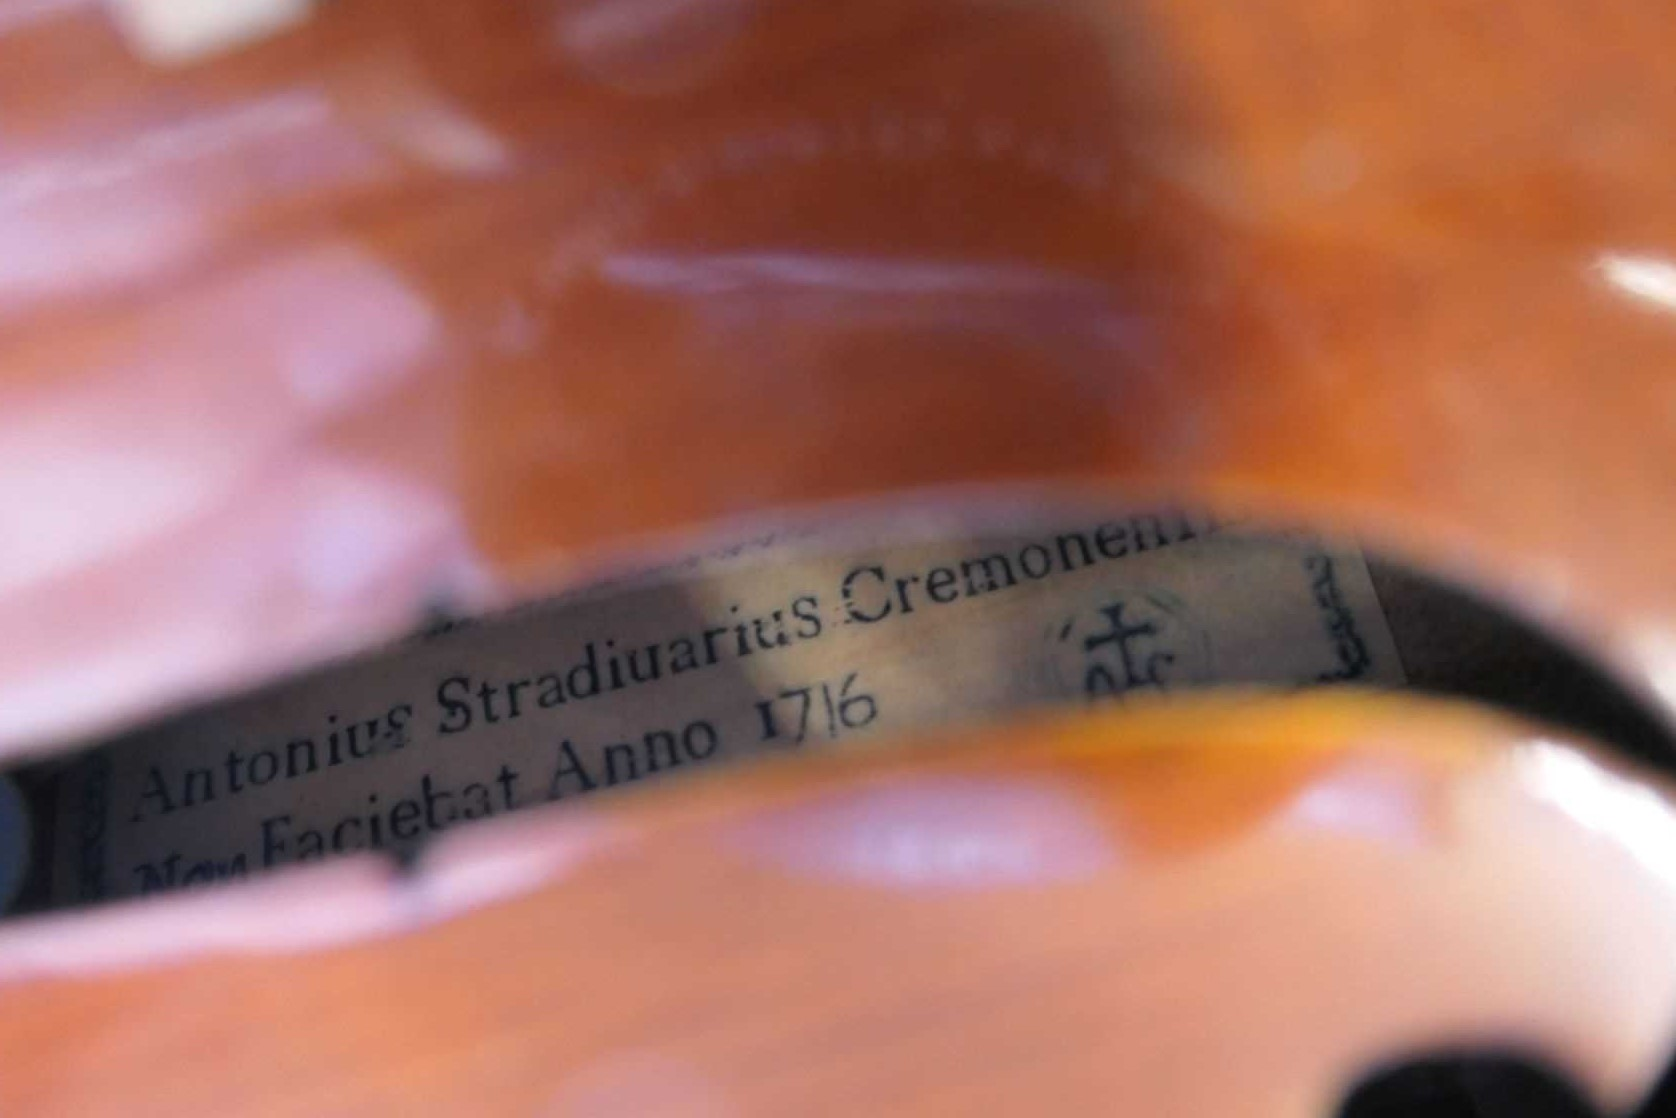 Lot 174 - A Violin with a printed paper label within 'Antonius Stradiuarius Cremonensis non Faciebat Anno